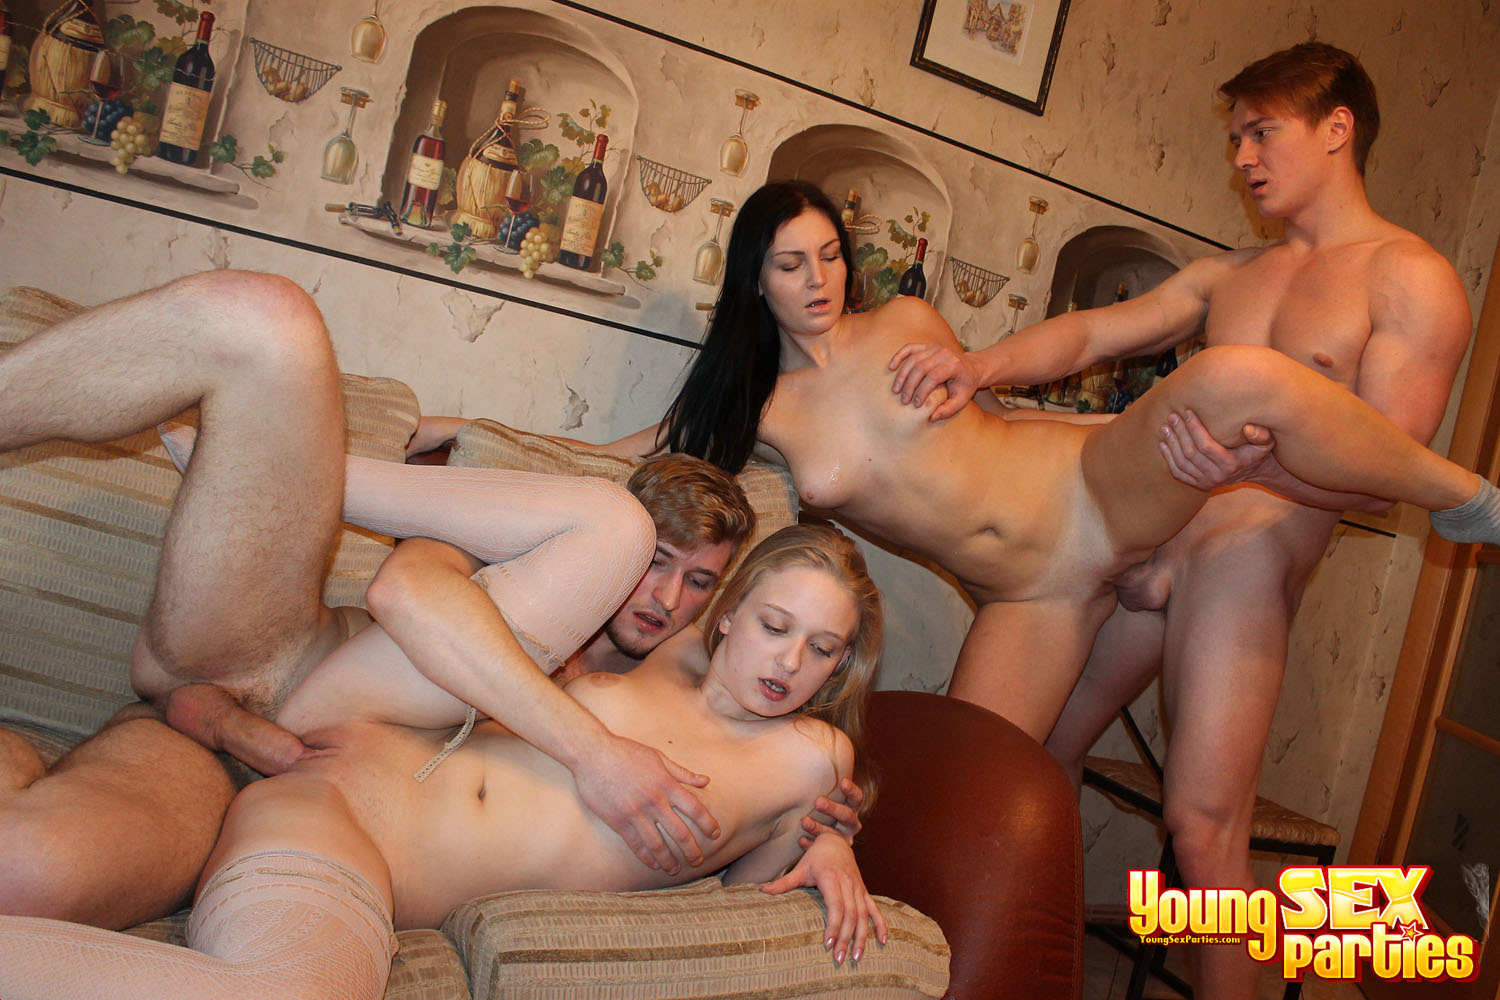 Redhead girls young sex party image porn star how